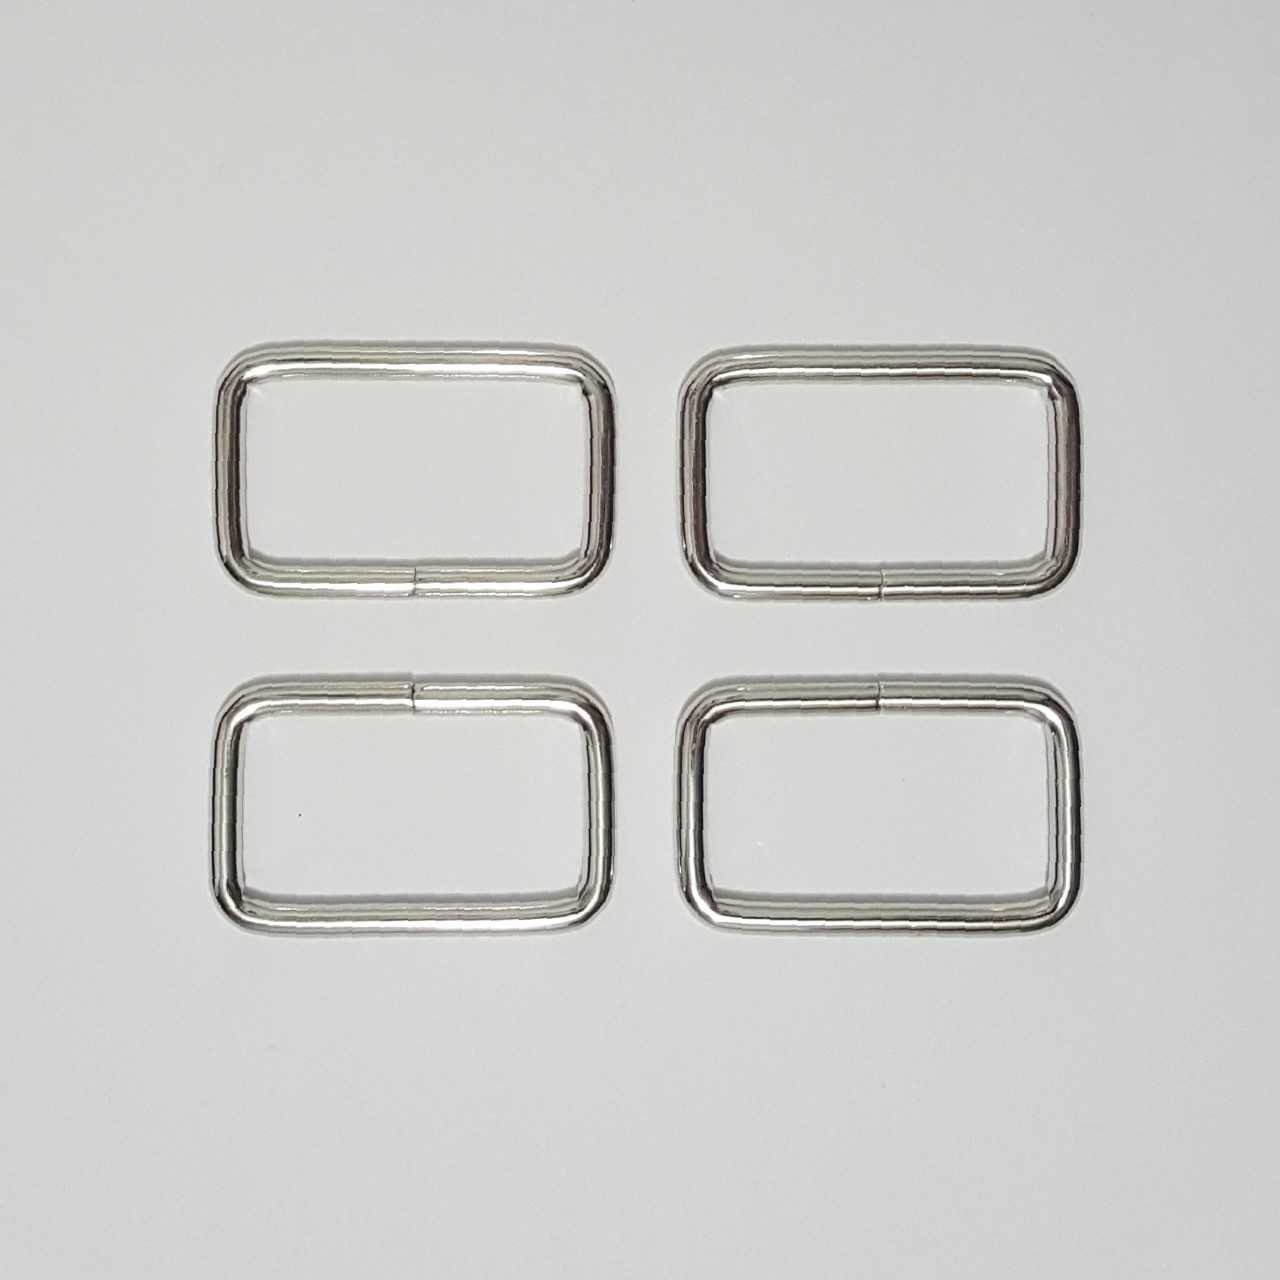 1.5- 4 Rectangle Rings - Nickel